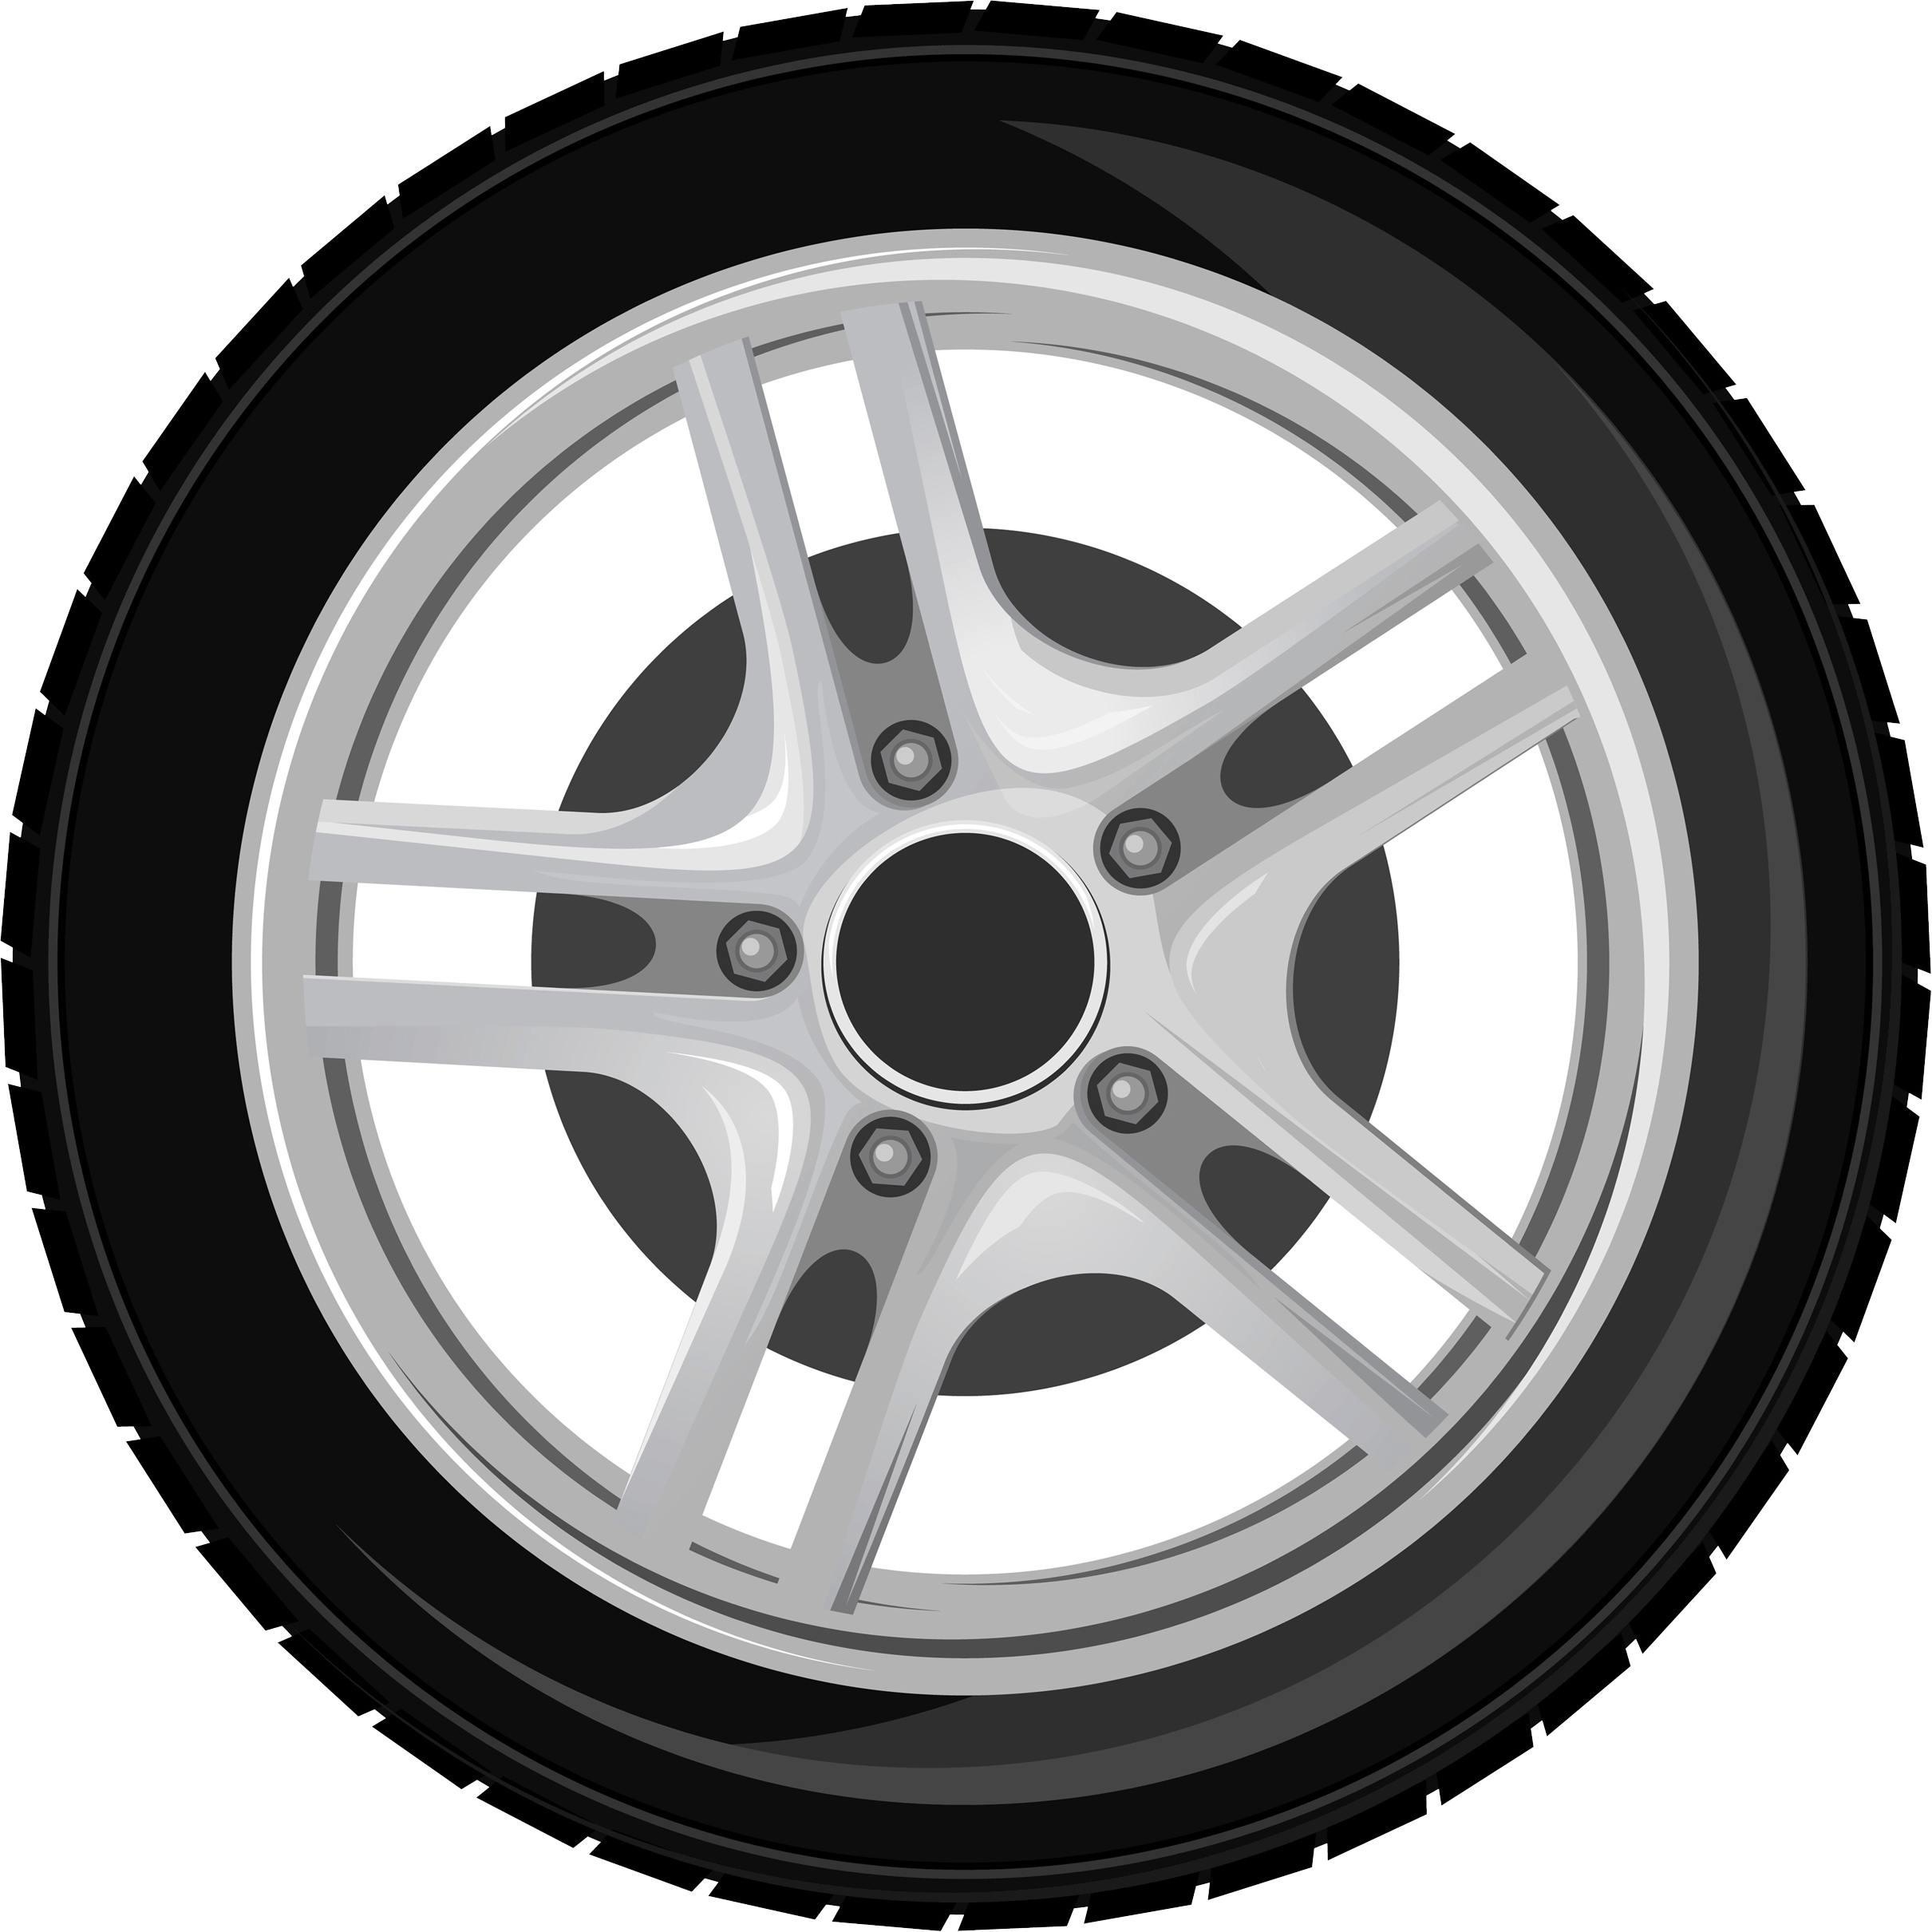 Carbone automotive group service centers in new york and vermont shop parts buycottarizona